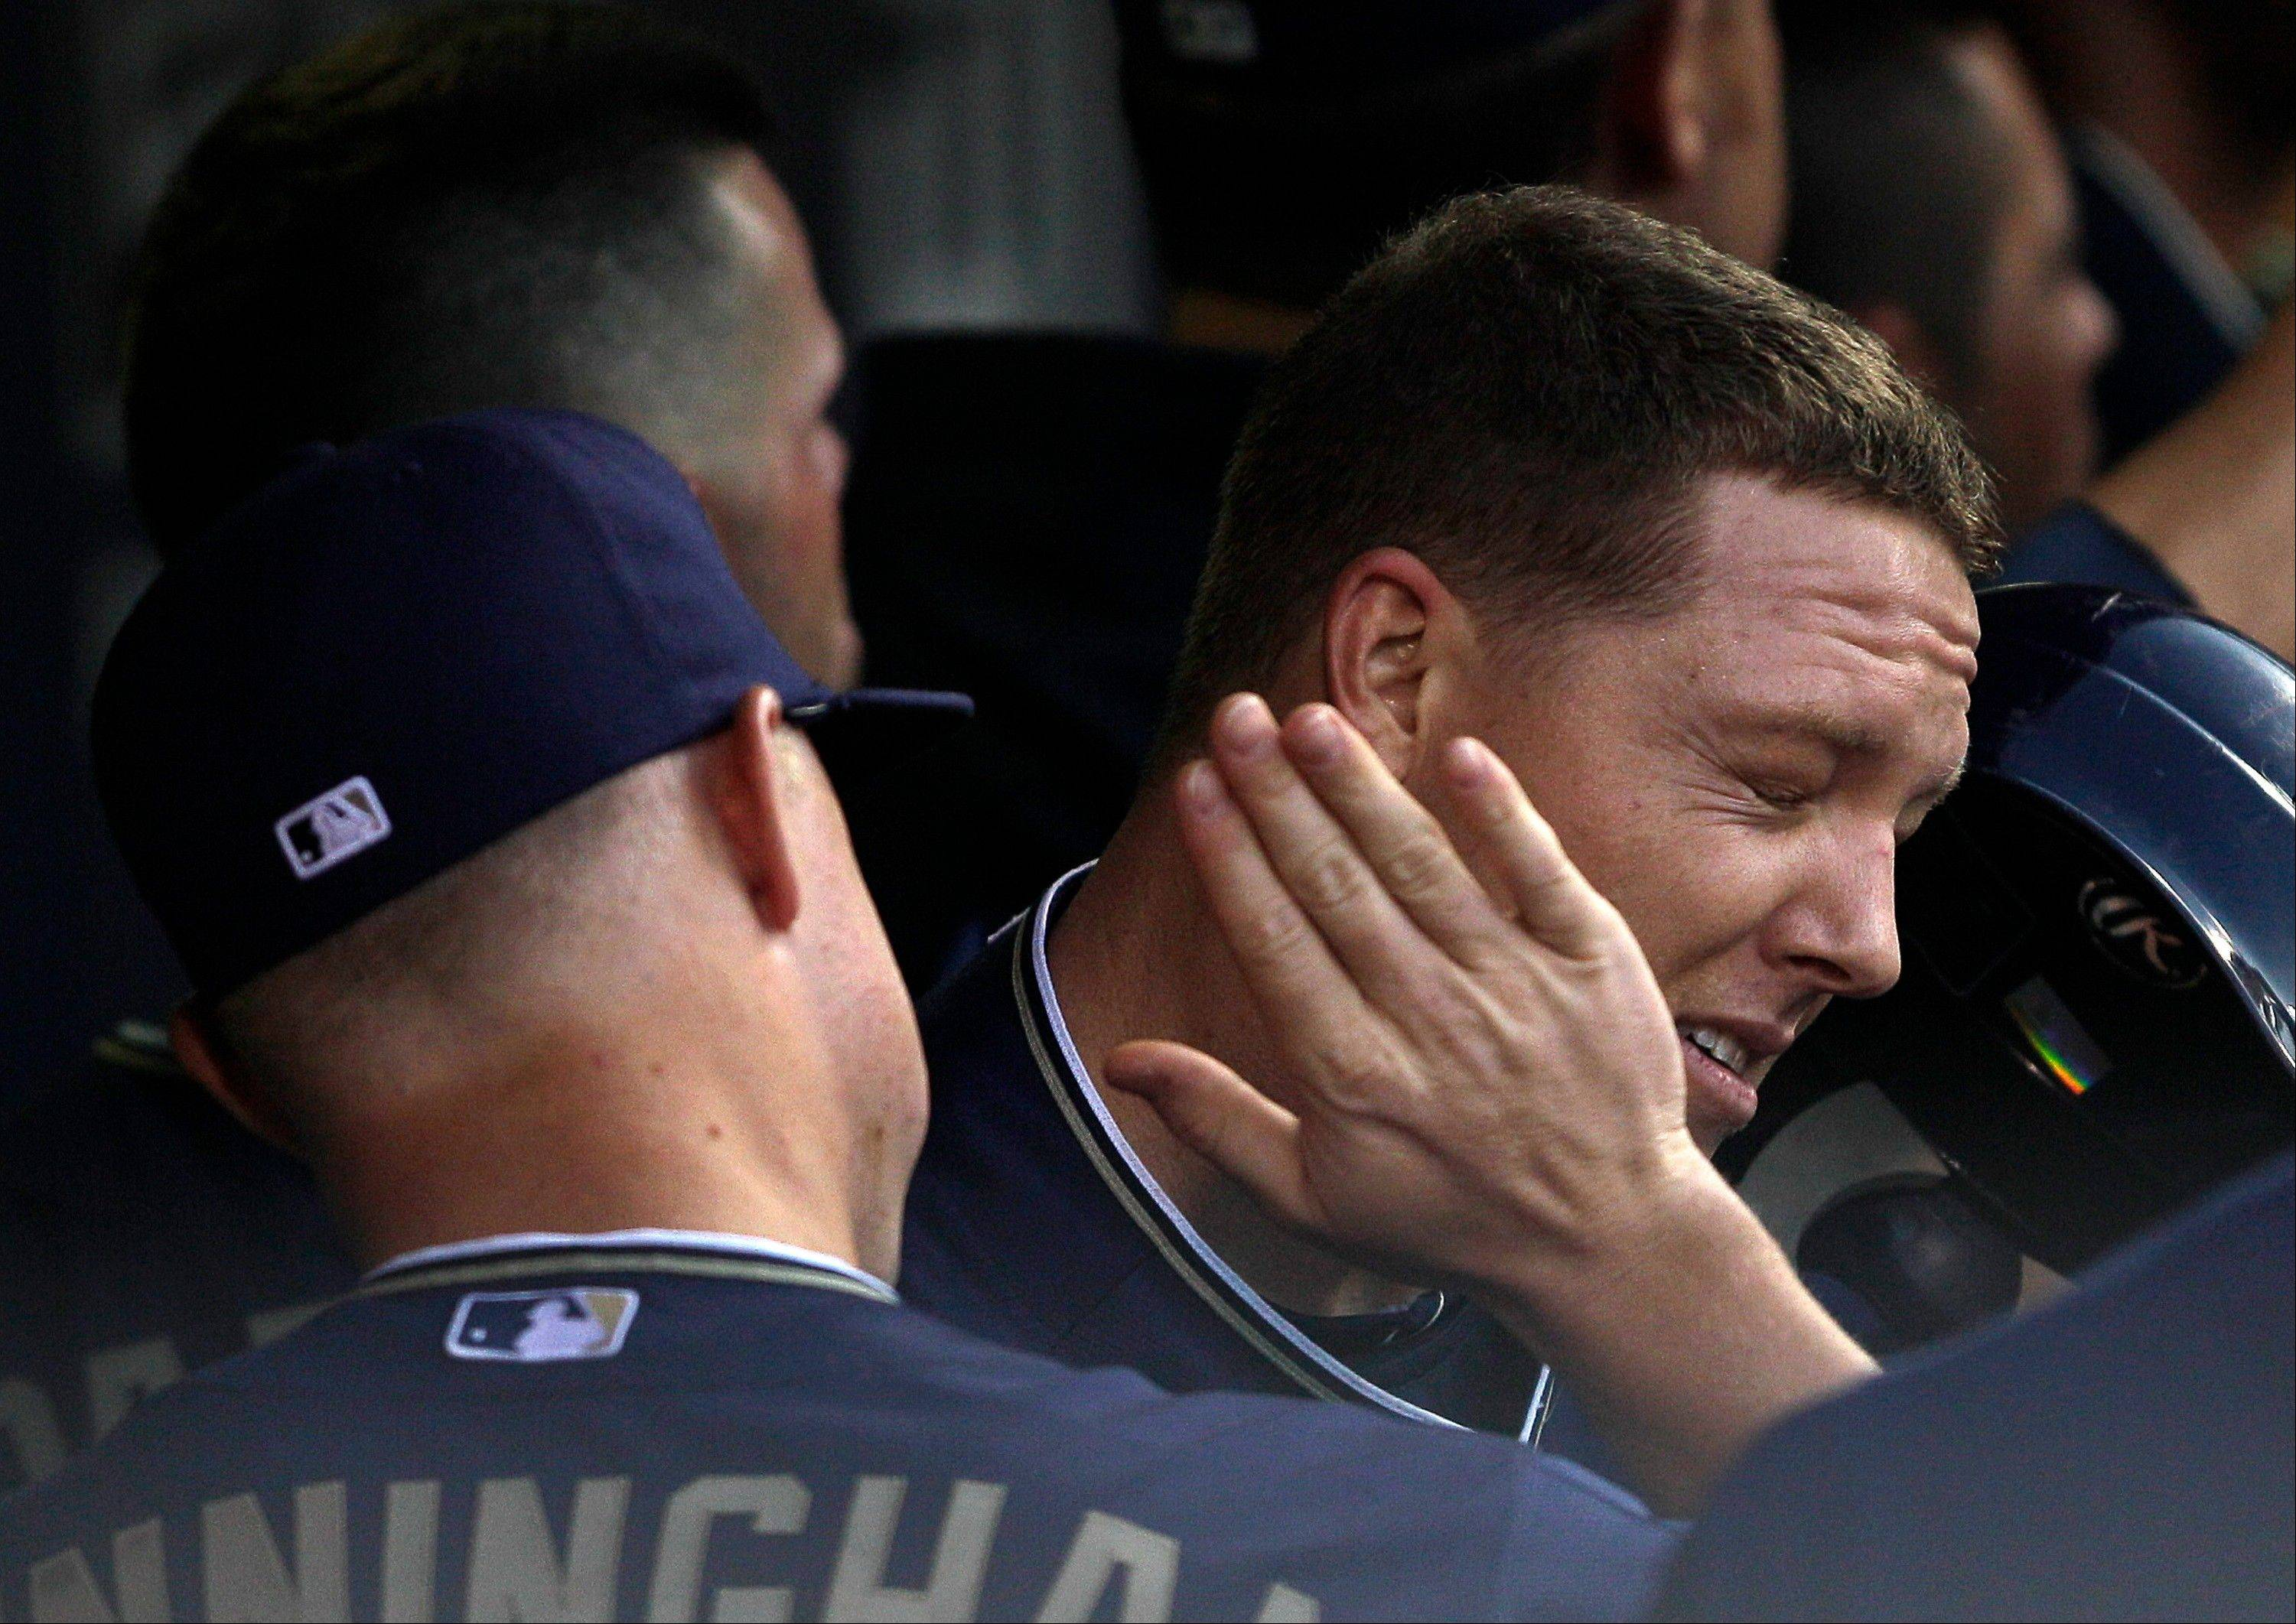 The San Diego Padres' Nick Hundley, right, gets a slap from teammate Aaron Cunningham after hitting a 3-run home run against the Cubs during the third inning Wednesday.